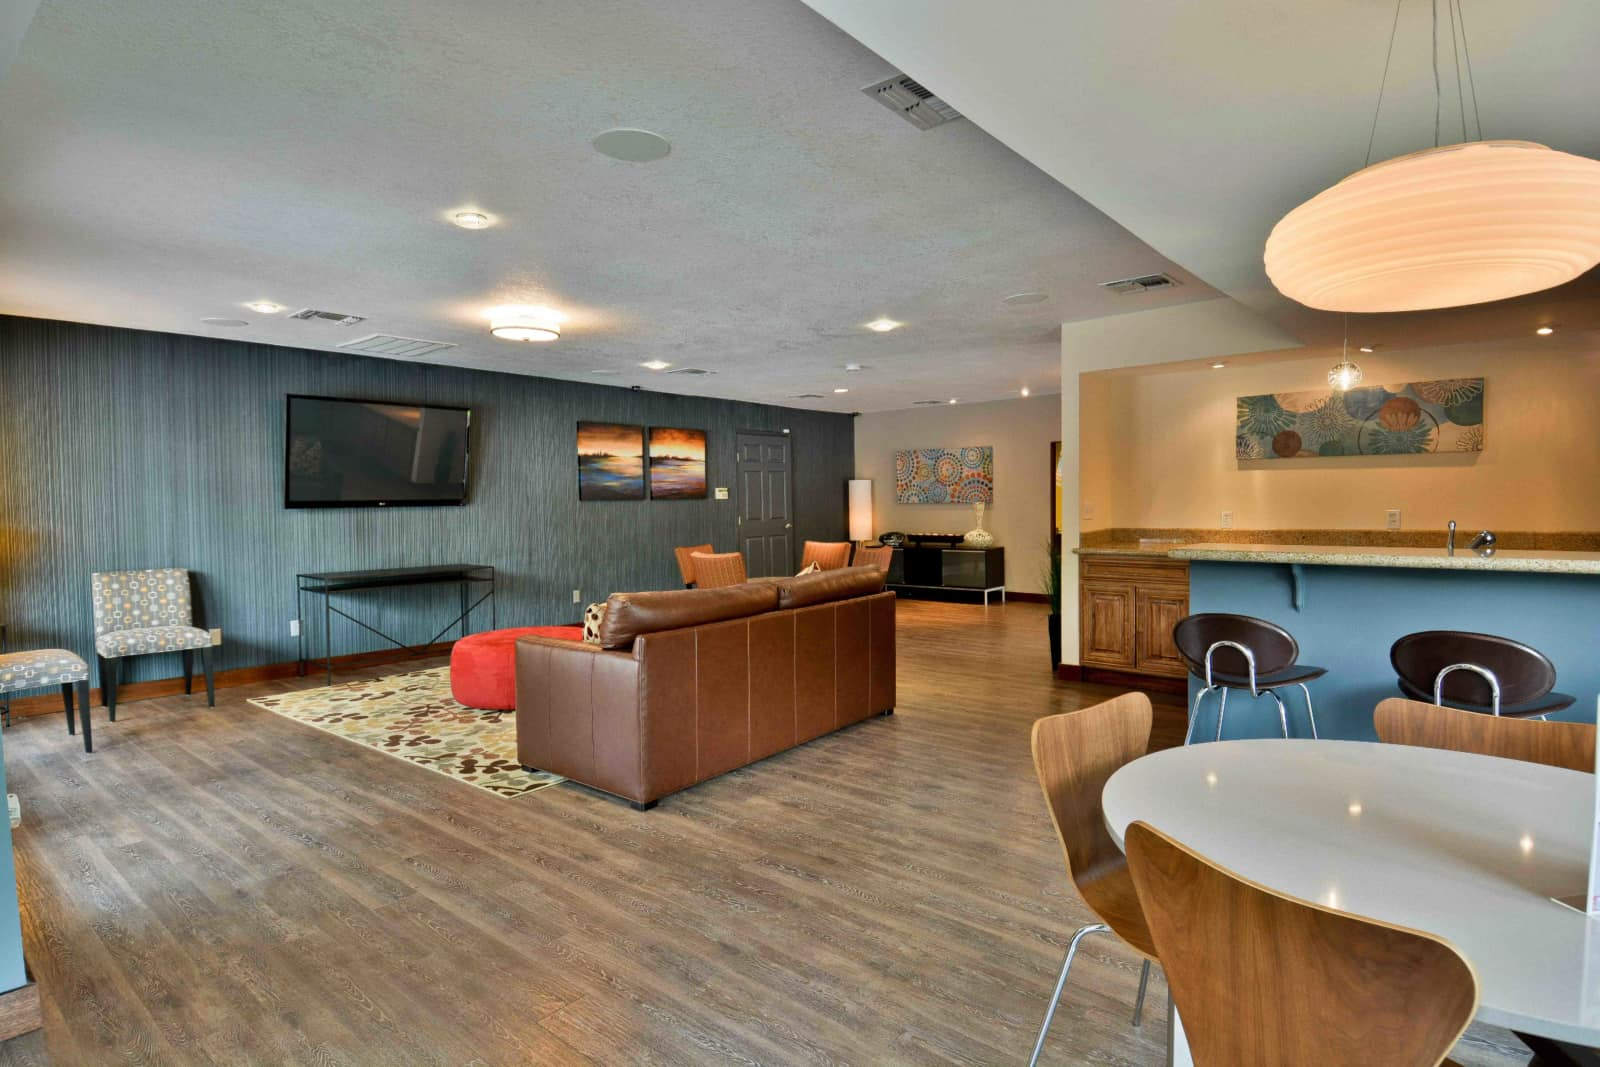 Interior of common area with couches, chairs, tables, TV, and kitchen area.